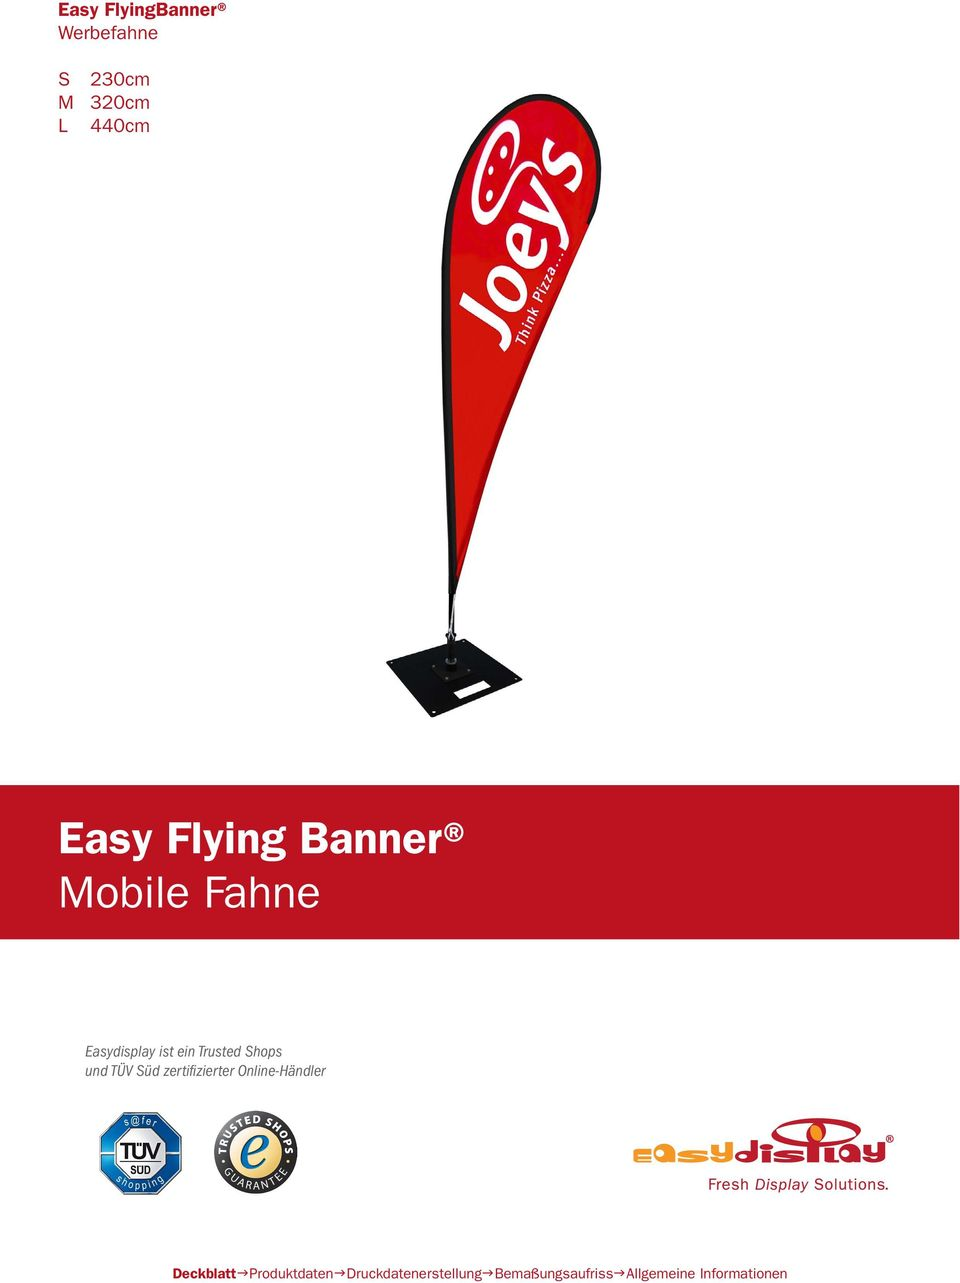 Fahne Easydisplay ist ein Trusted Shops